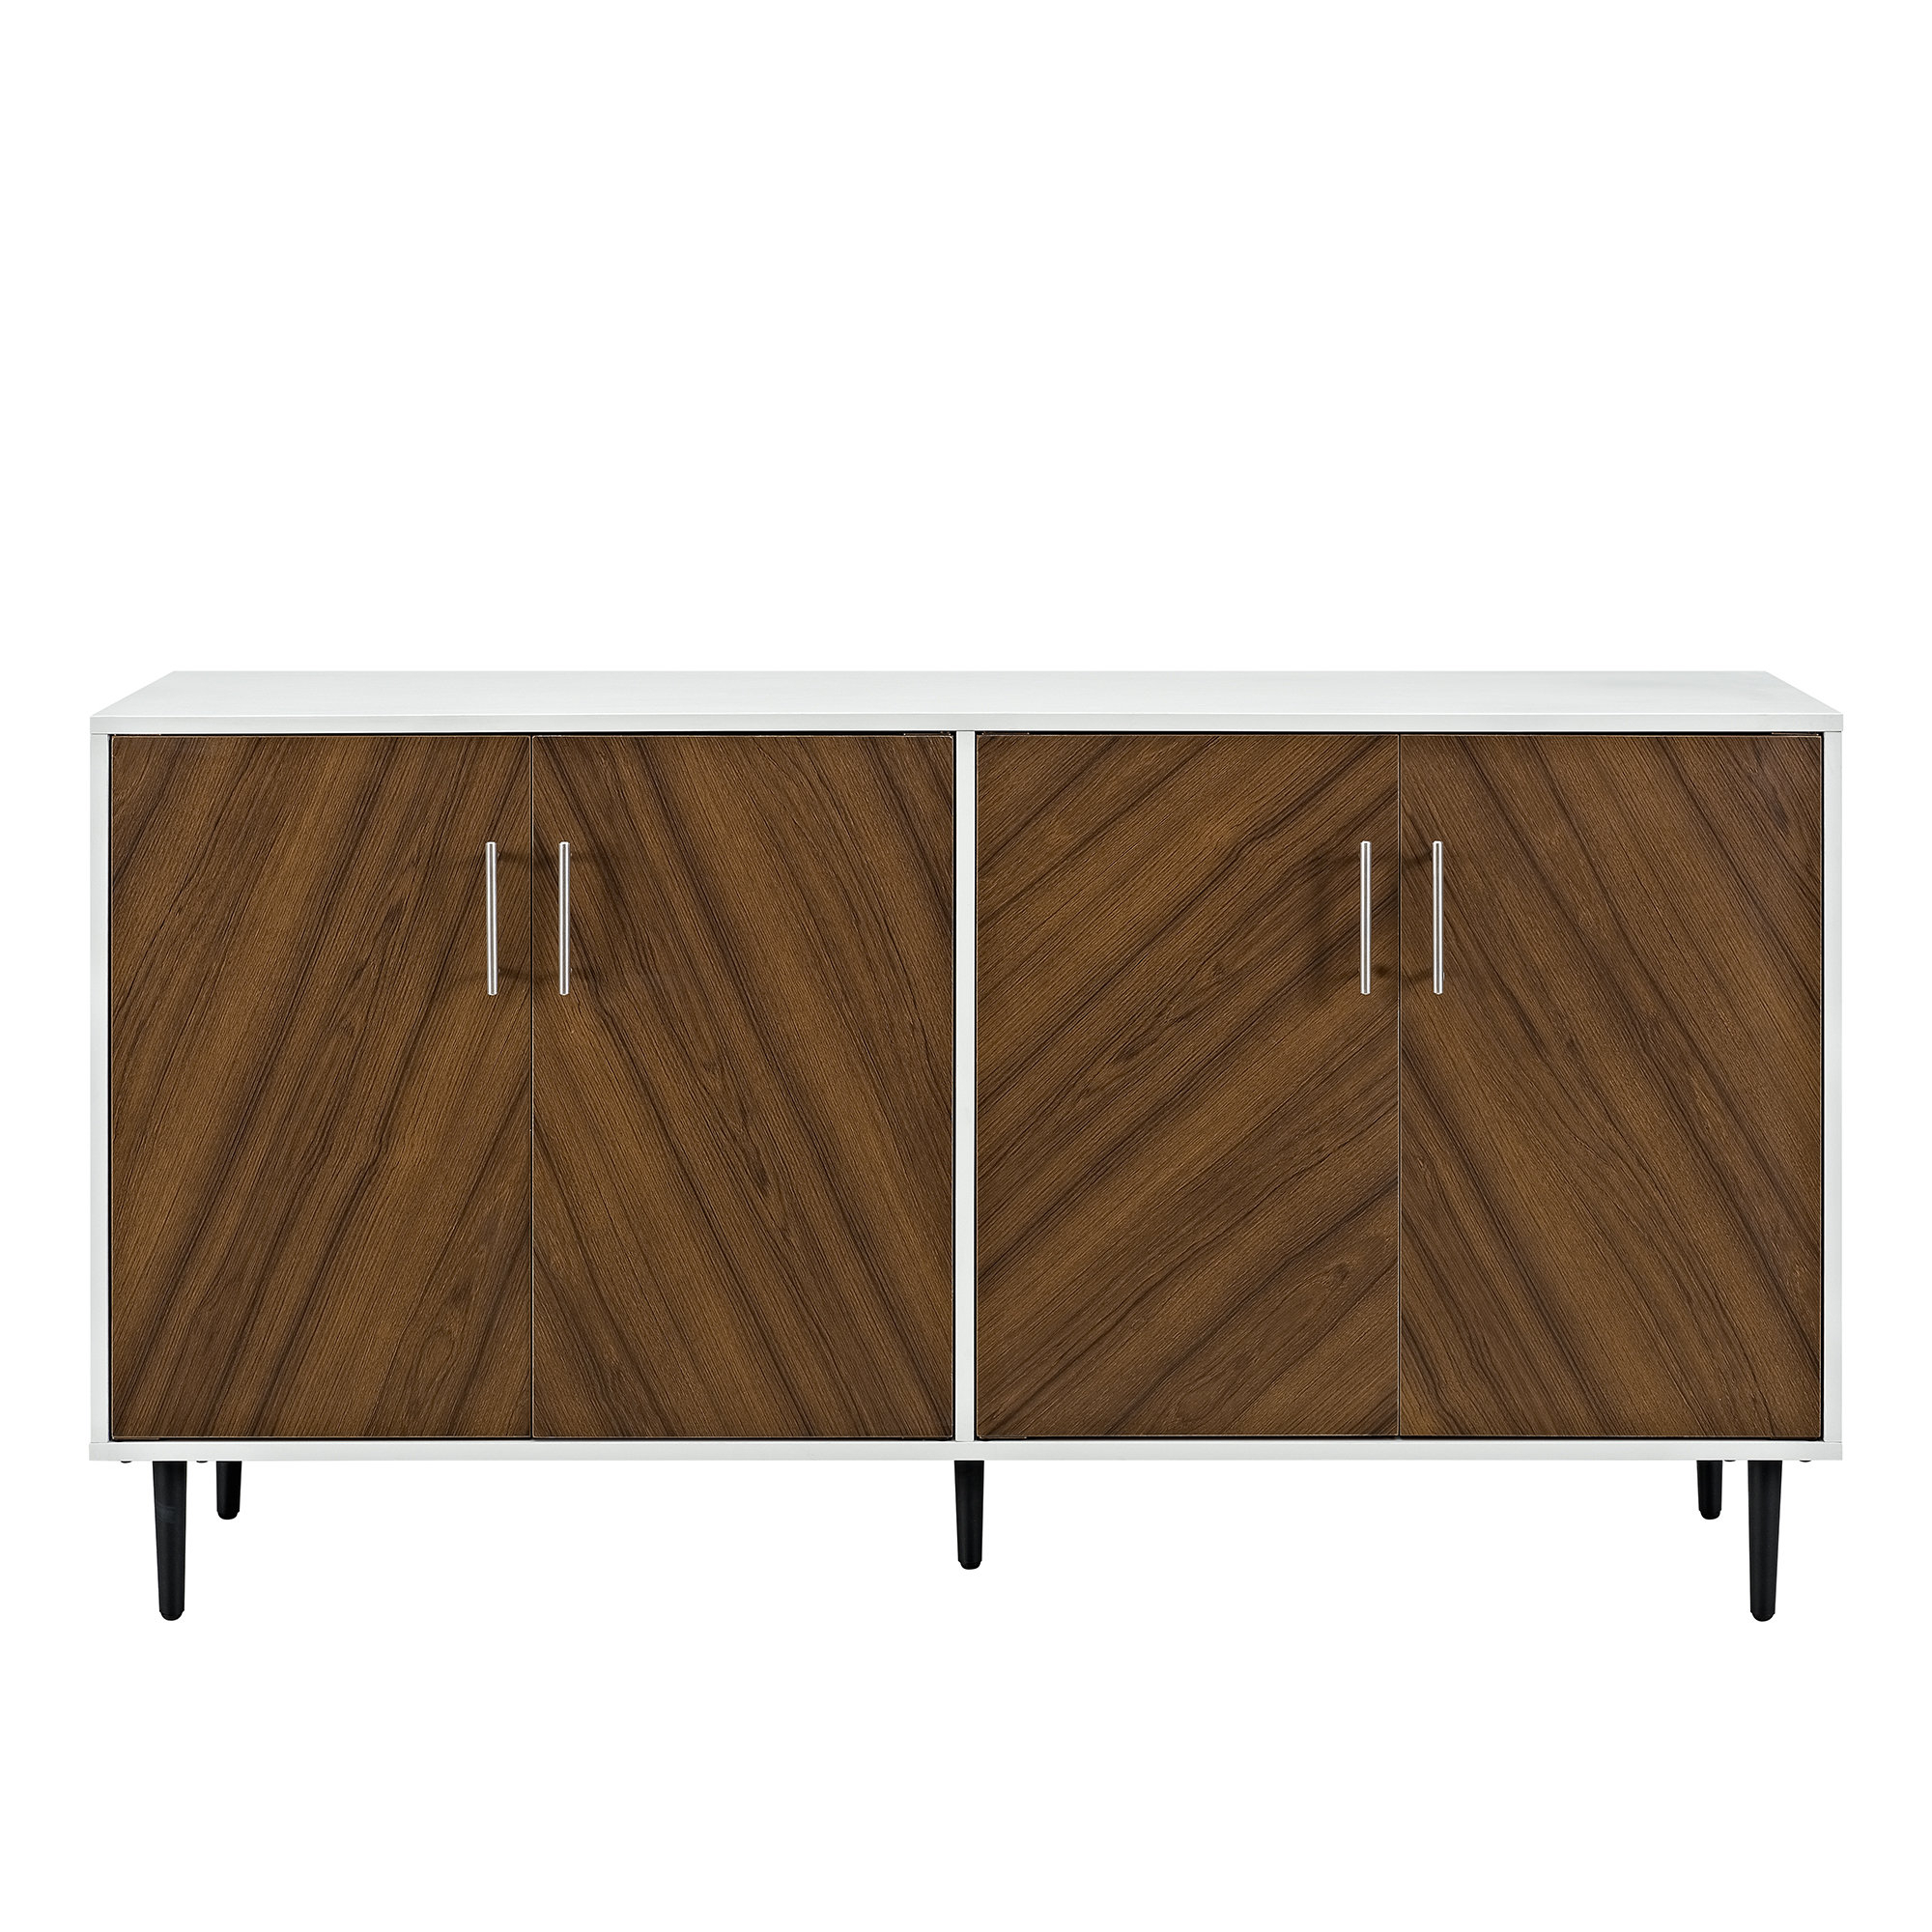 Modern & Contemporary Modern White Credenzas | Allmodern In Contemporary Wooden Buffets With One Side Door Storage Cabinets And Two Drawers (View 23 of 30)